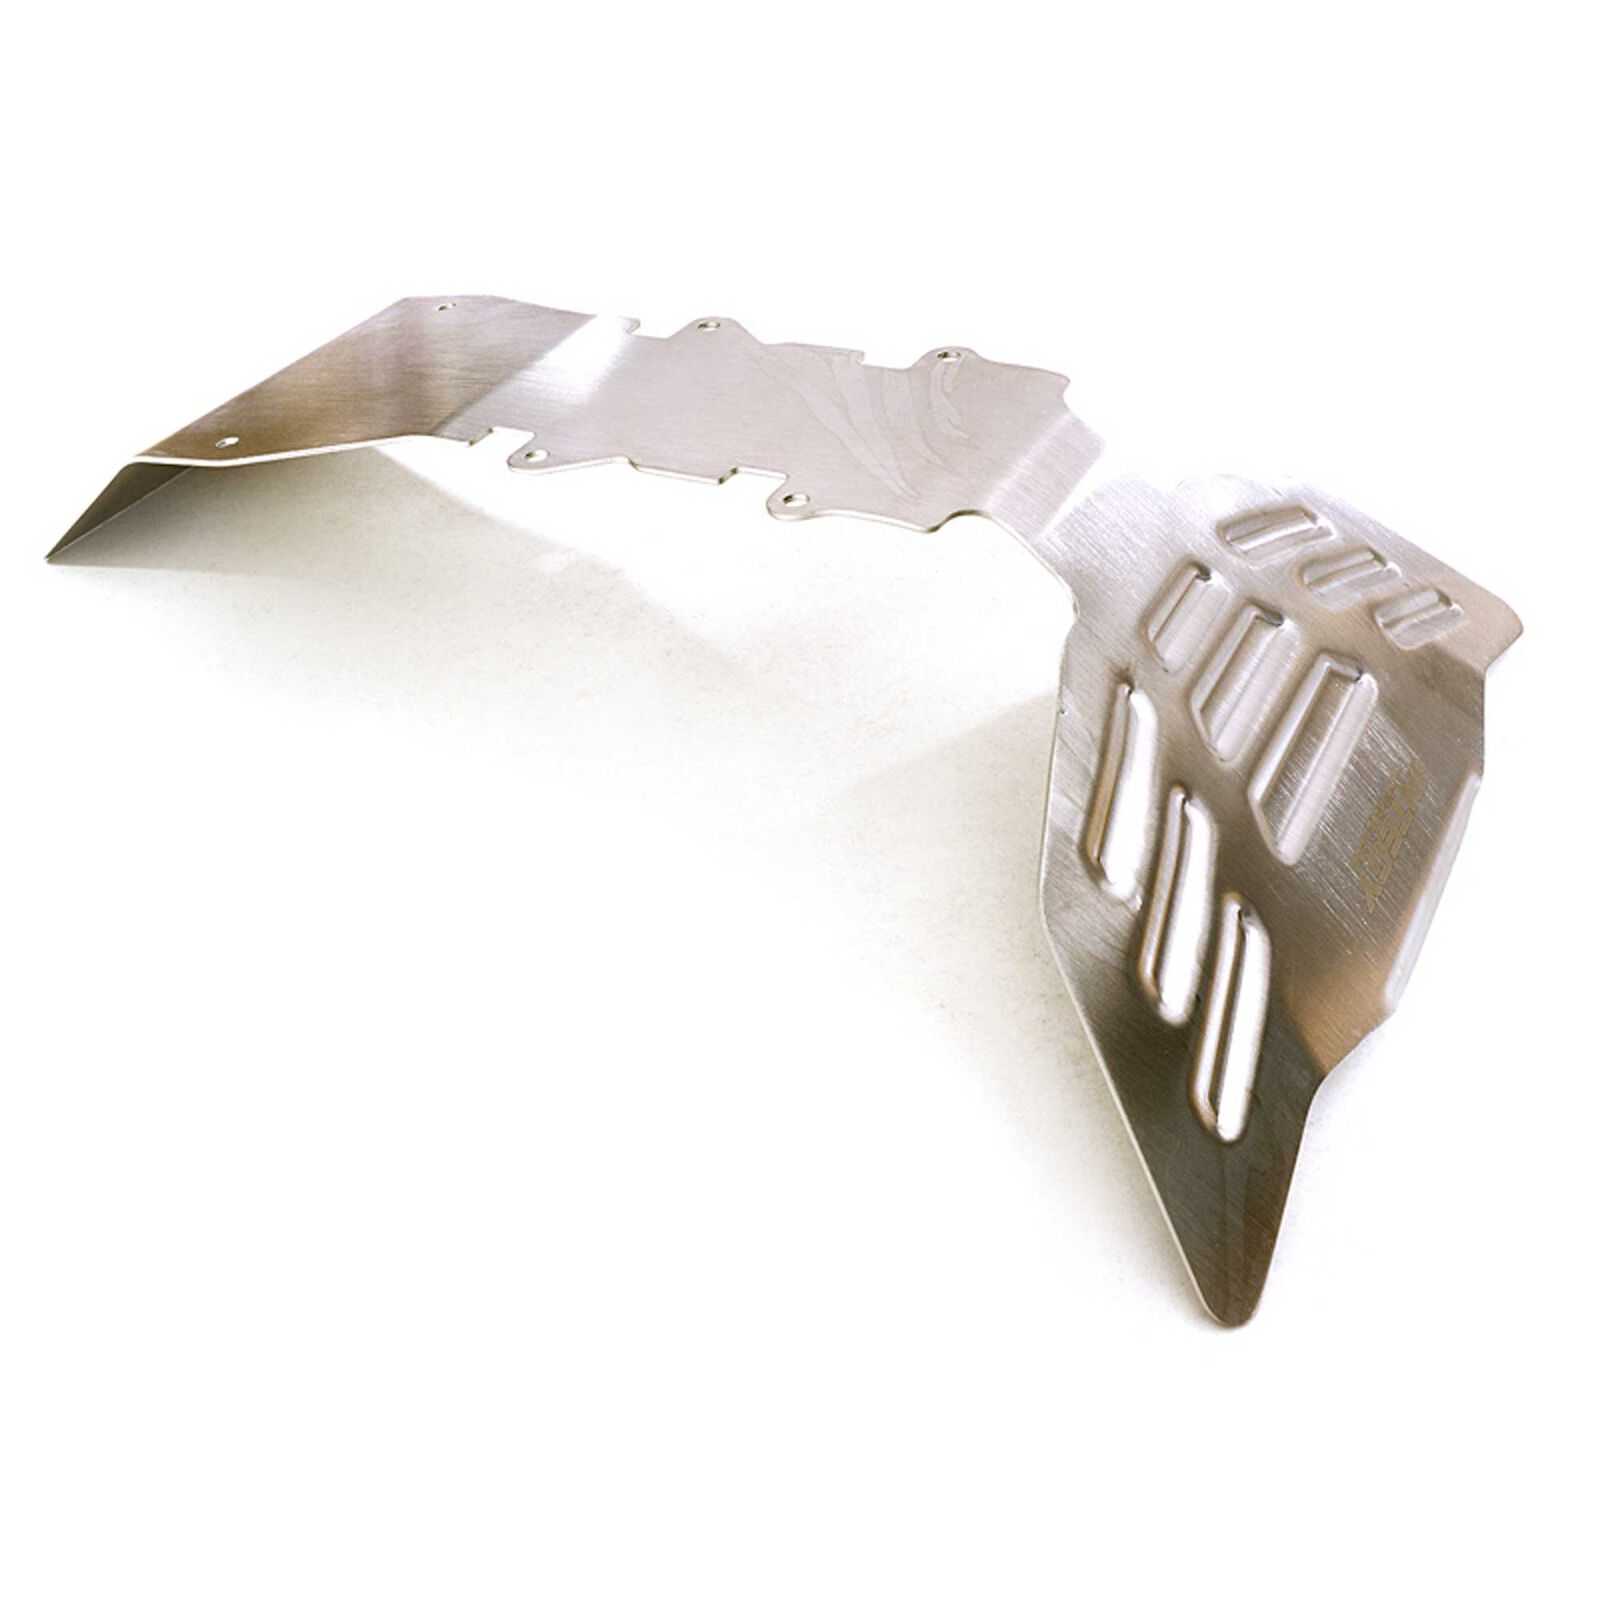 Stainless Steel Front Skid Plate  E-Maxx